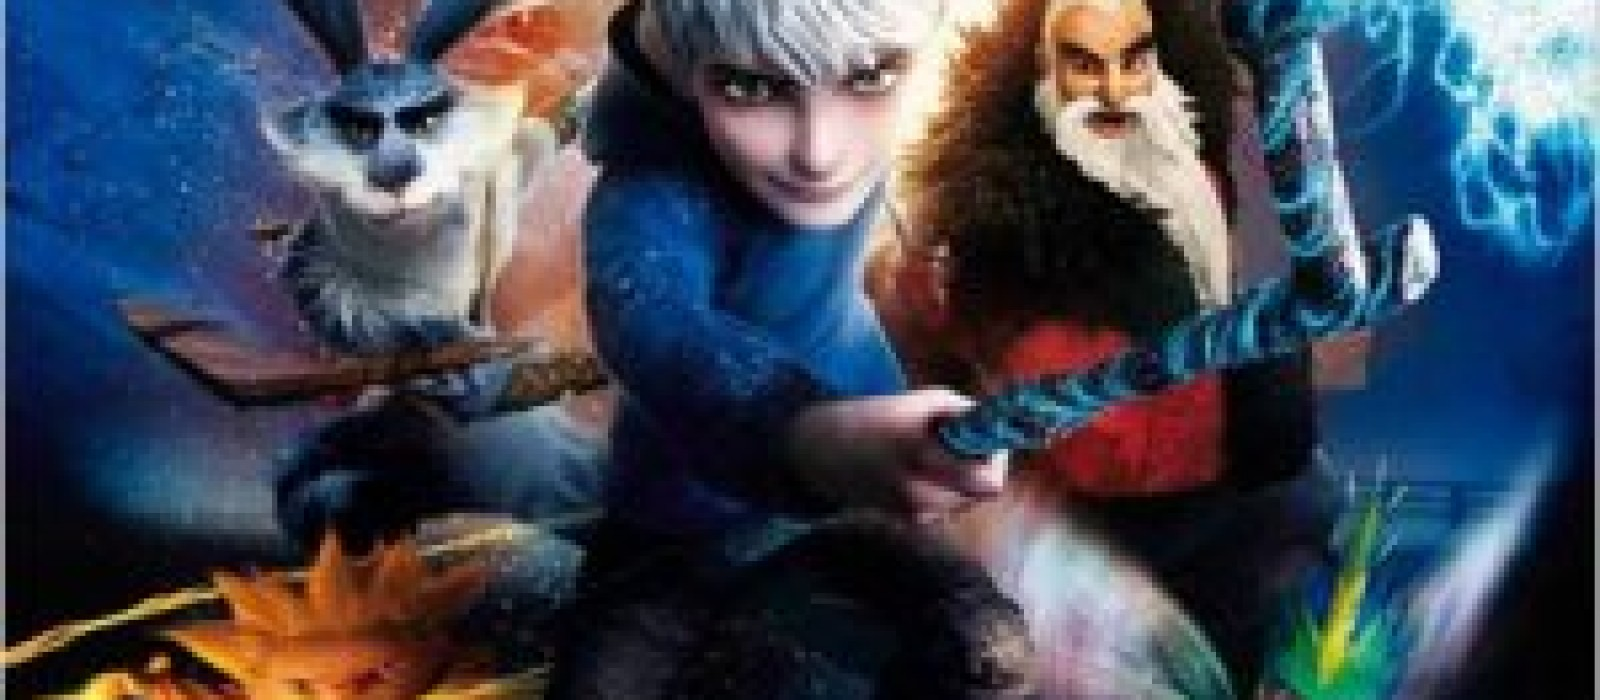 Les Cinq légendes (The rise of the guardians)